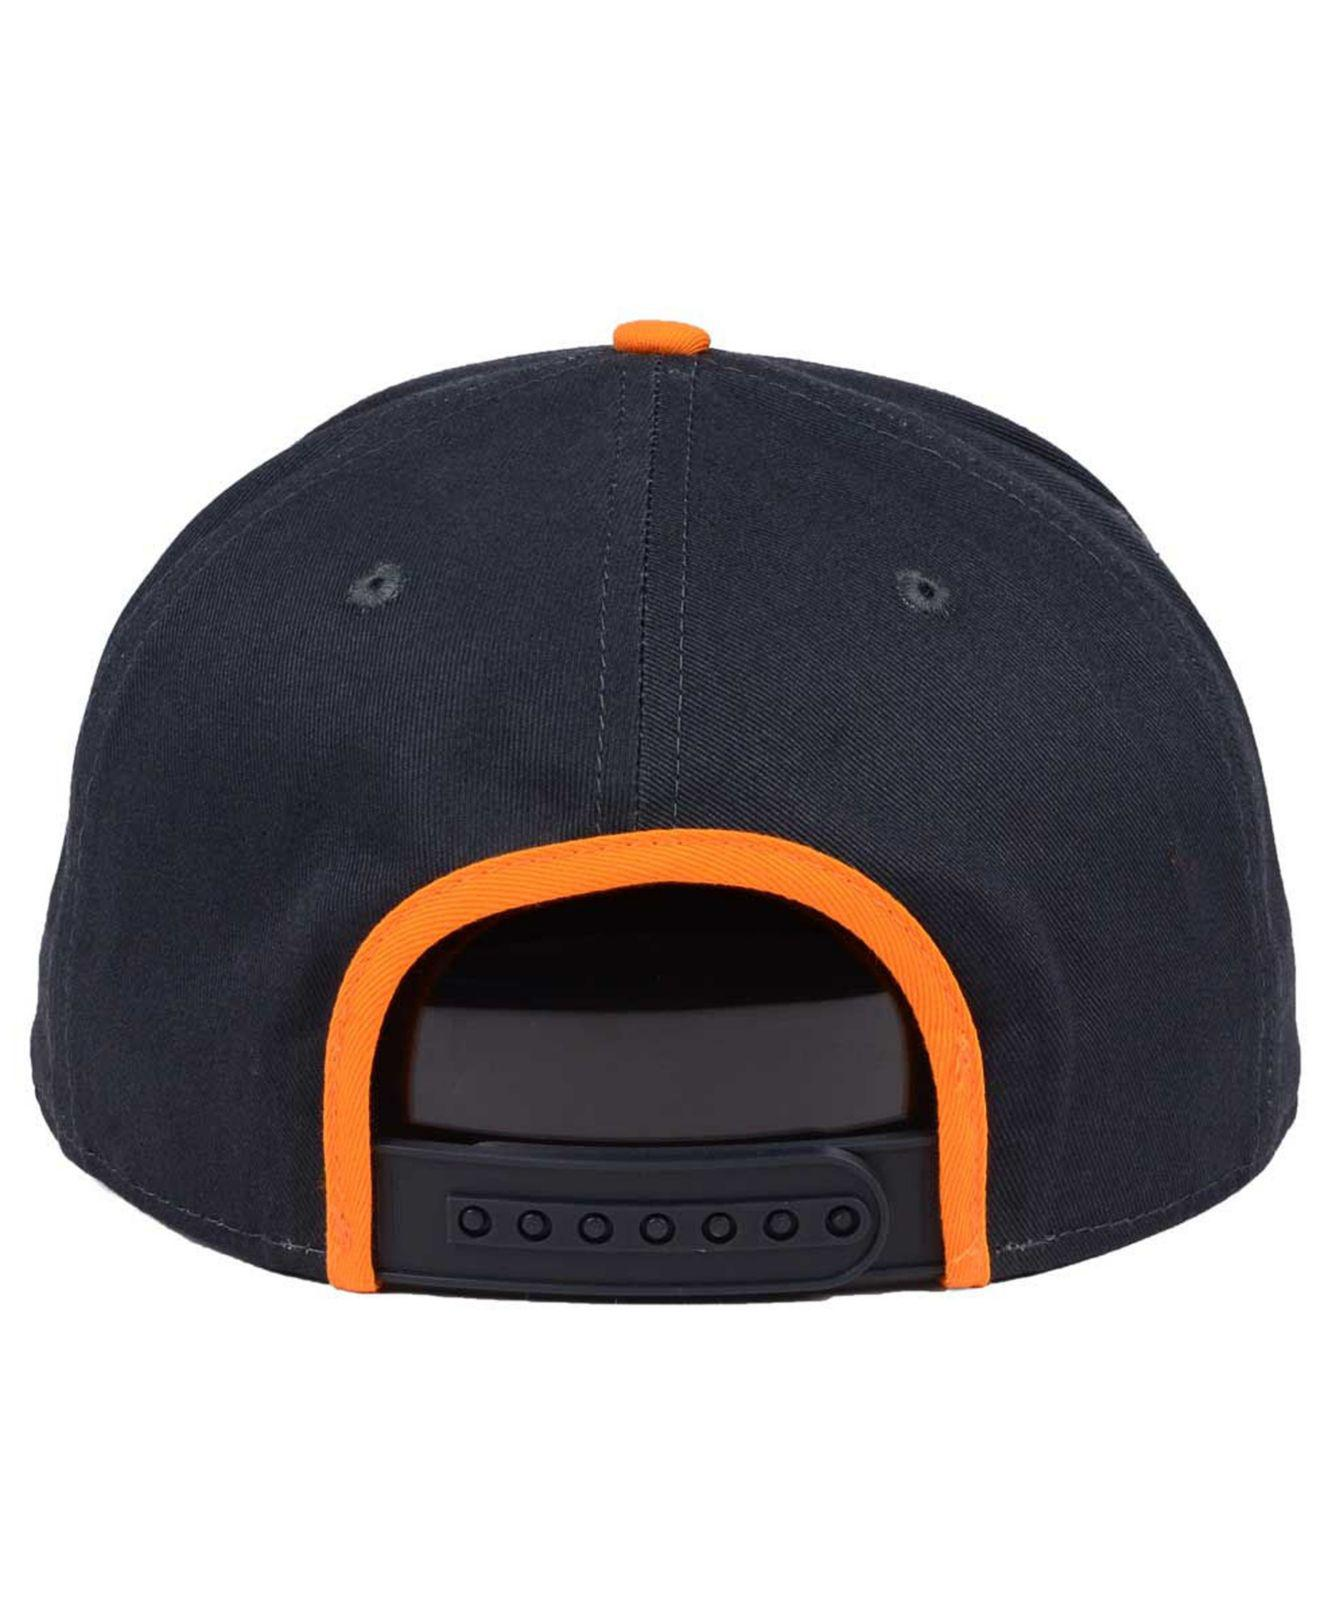 purchase cheap d4a63 d7d12 ... best price lyst nike col energy true snapback cap in blue for men 8a6df  fce03